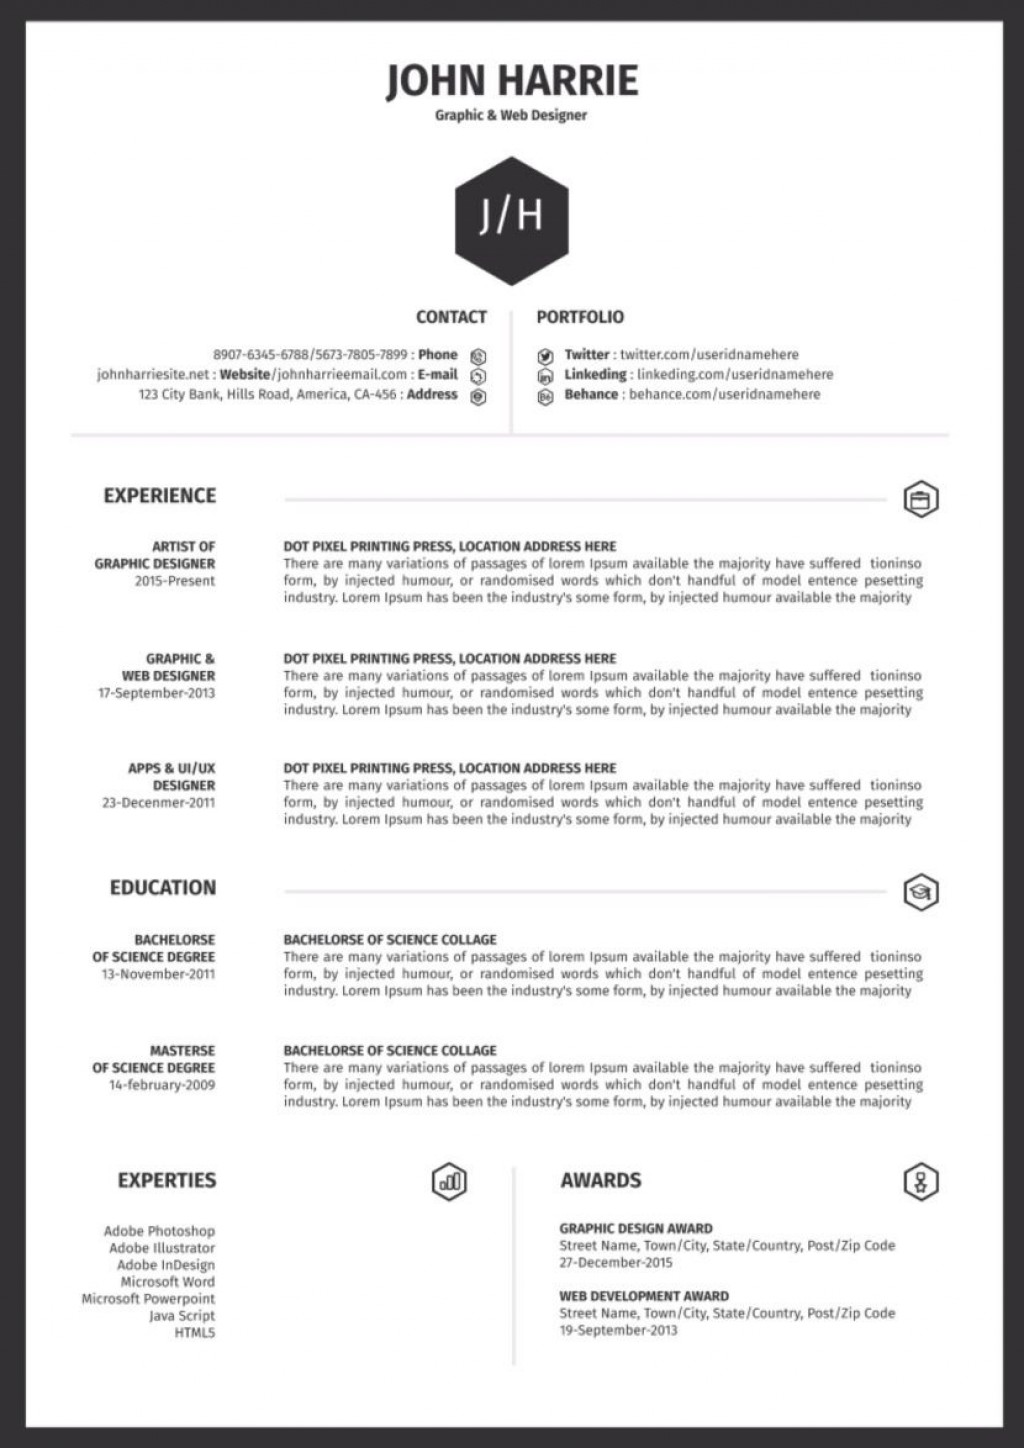 009 Fearsome One Page Resume Template Image  Templates Microsoft Word FreeLarge